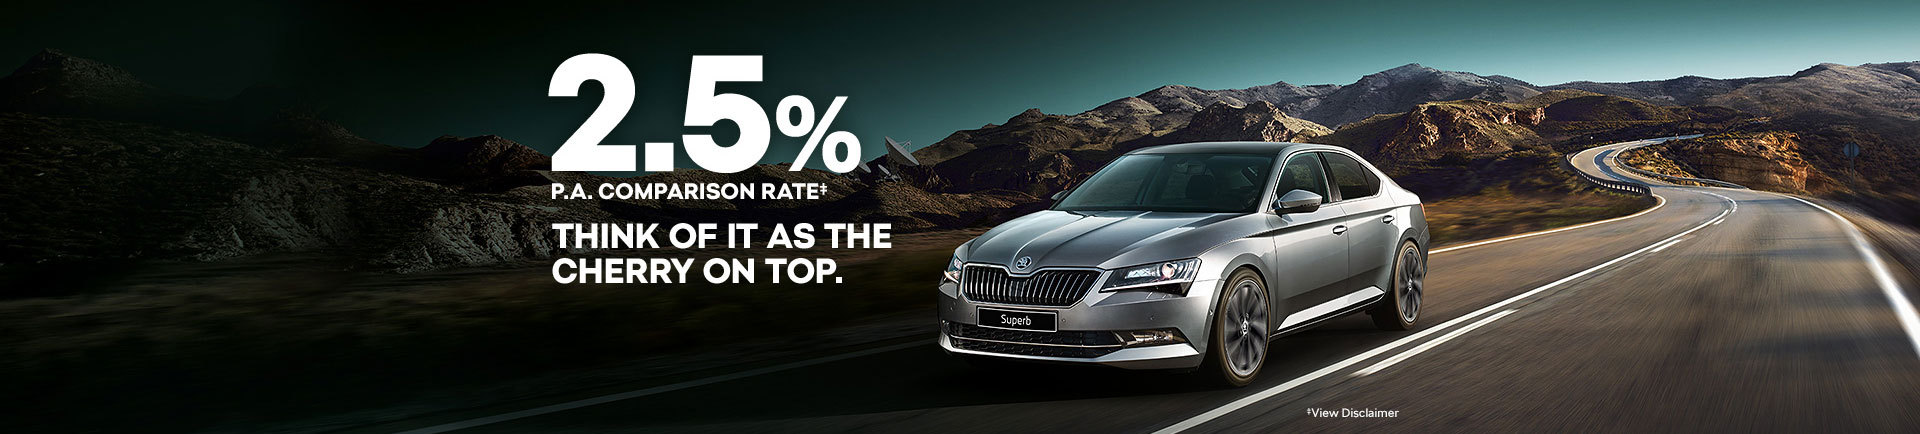 Skoda National Offer - 2.5% Comparison Rate